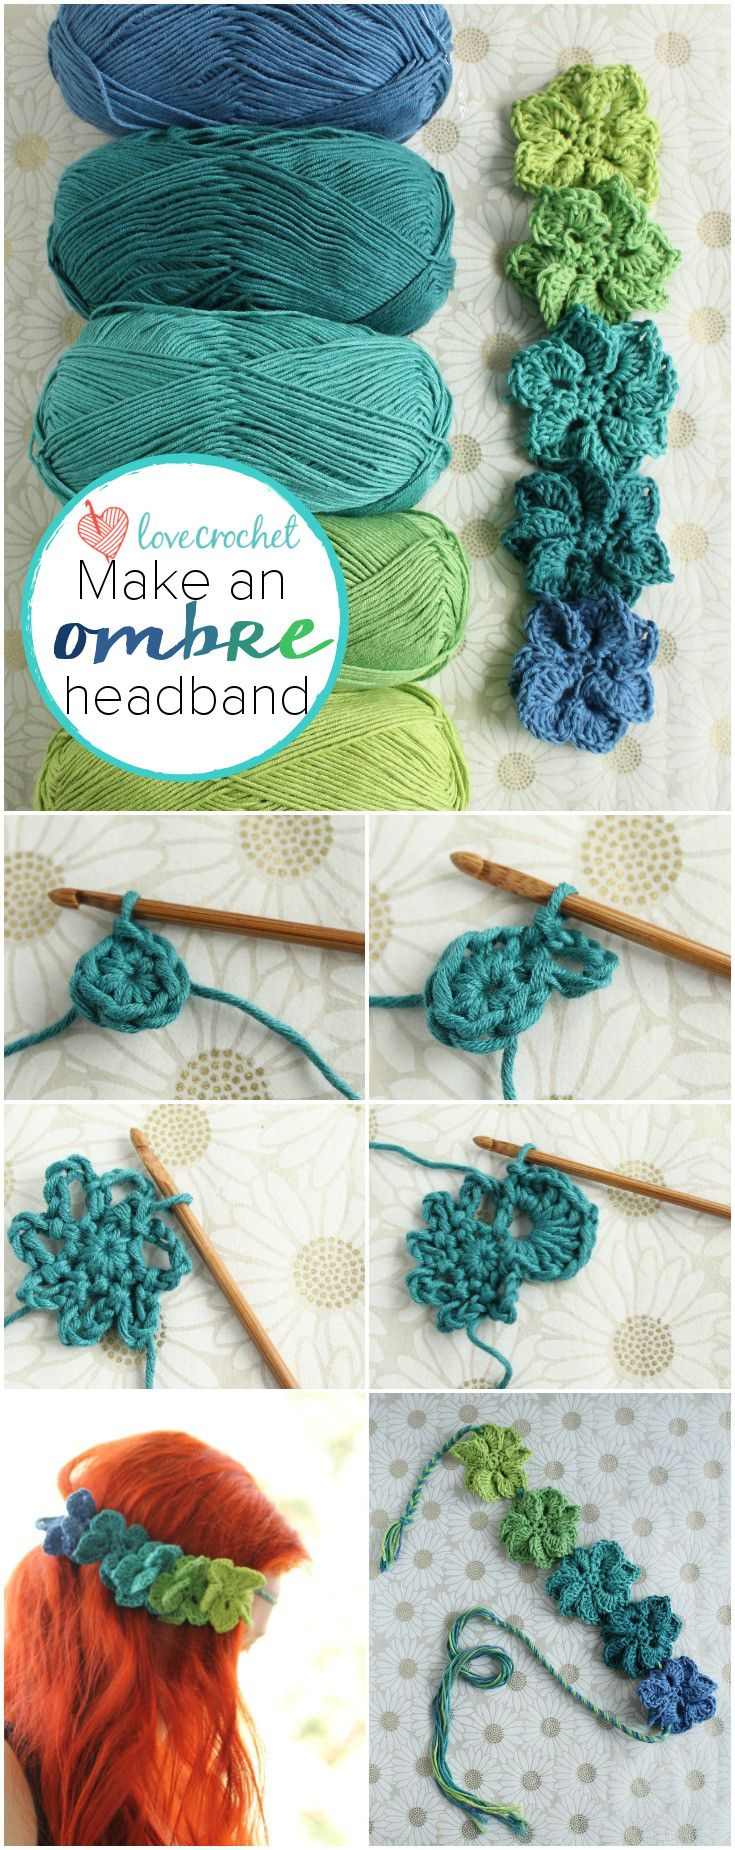 Make an ombre floral headband                                                                                                                                                     More